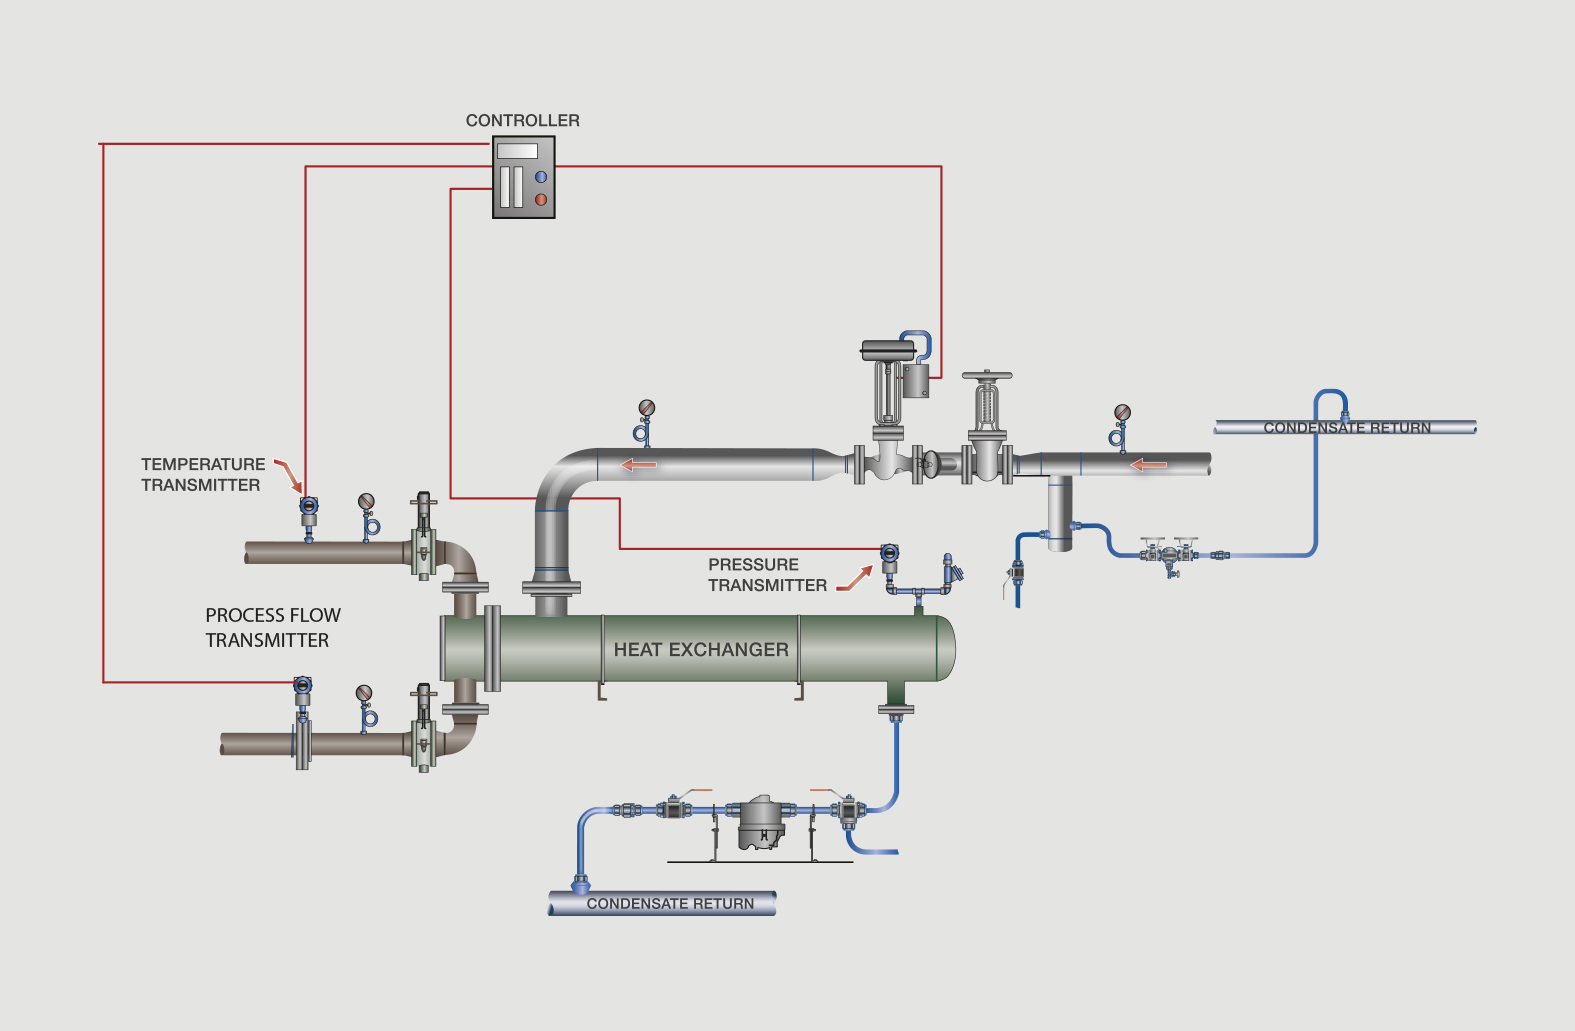 hight resolution of  feed forward steam pressure and cascade process fluid flow into the control scheme using all possible variables in the heat transfer control can